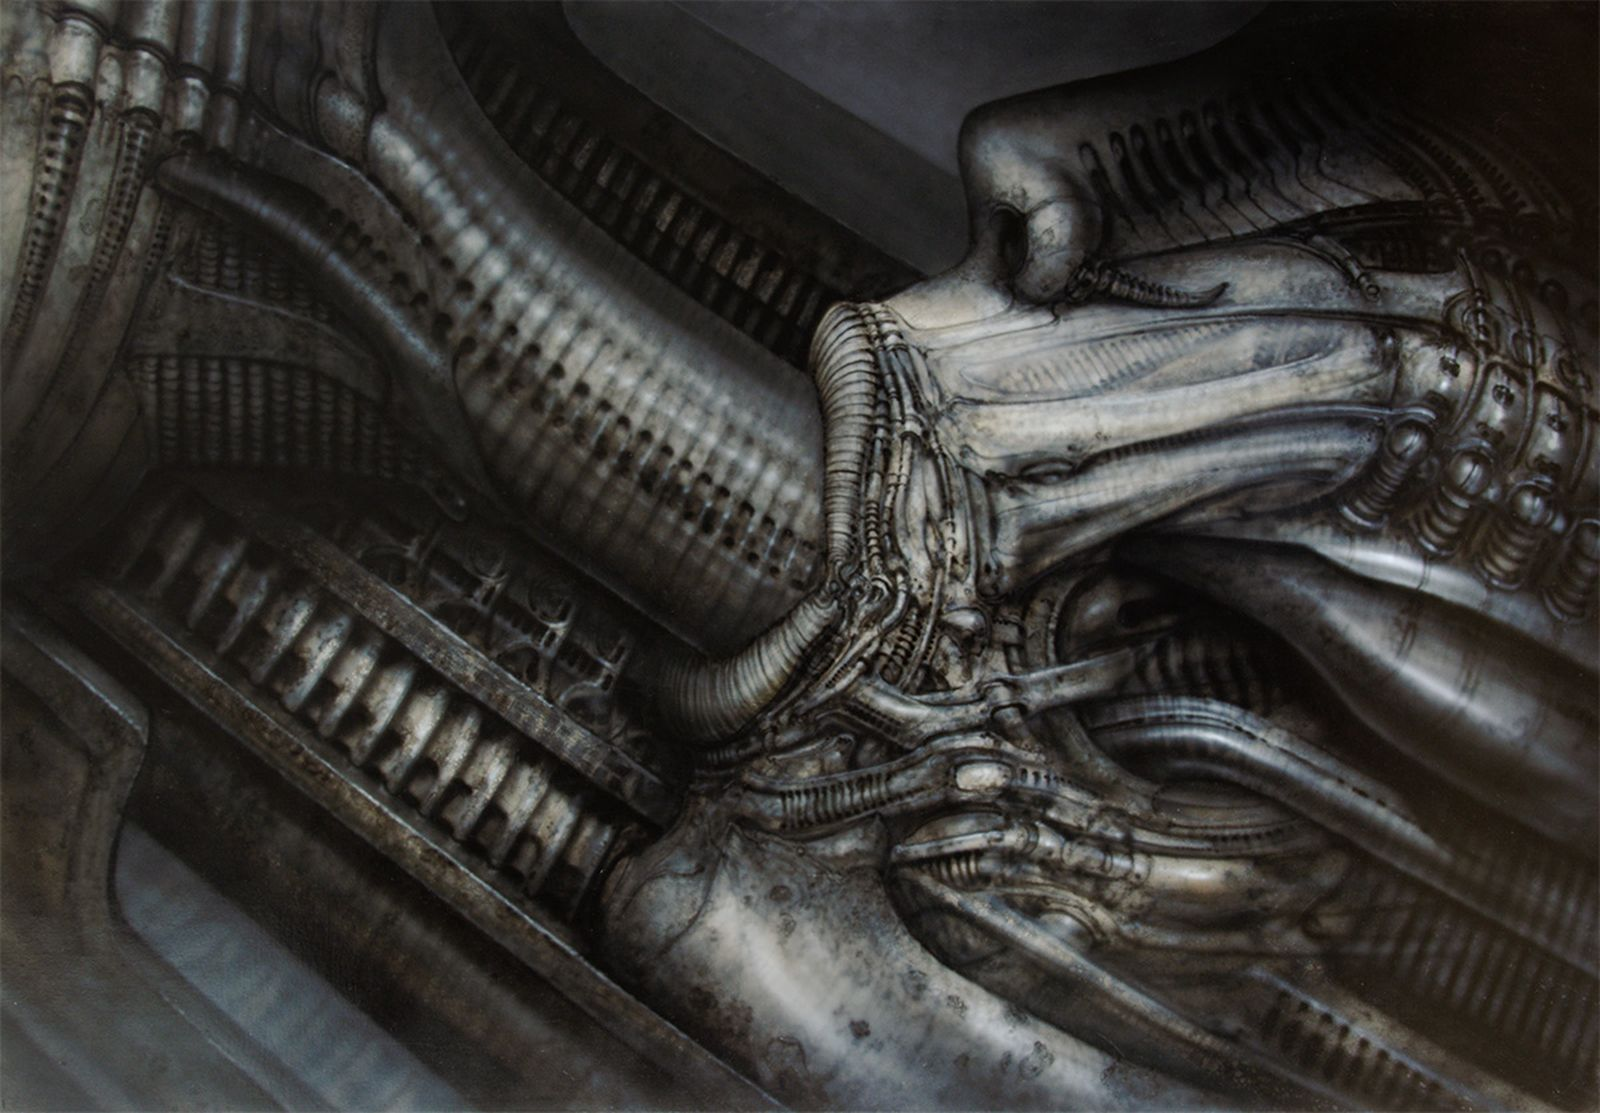 HR Giger, Erotomechanics IX (Fellatio), 1979